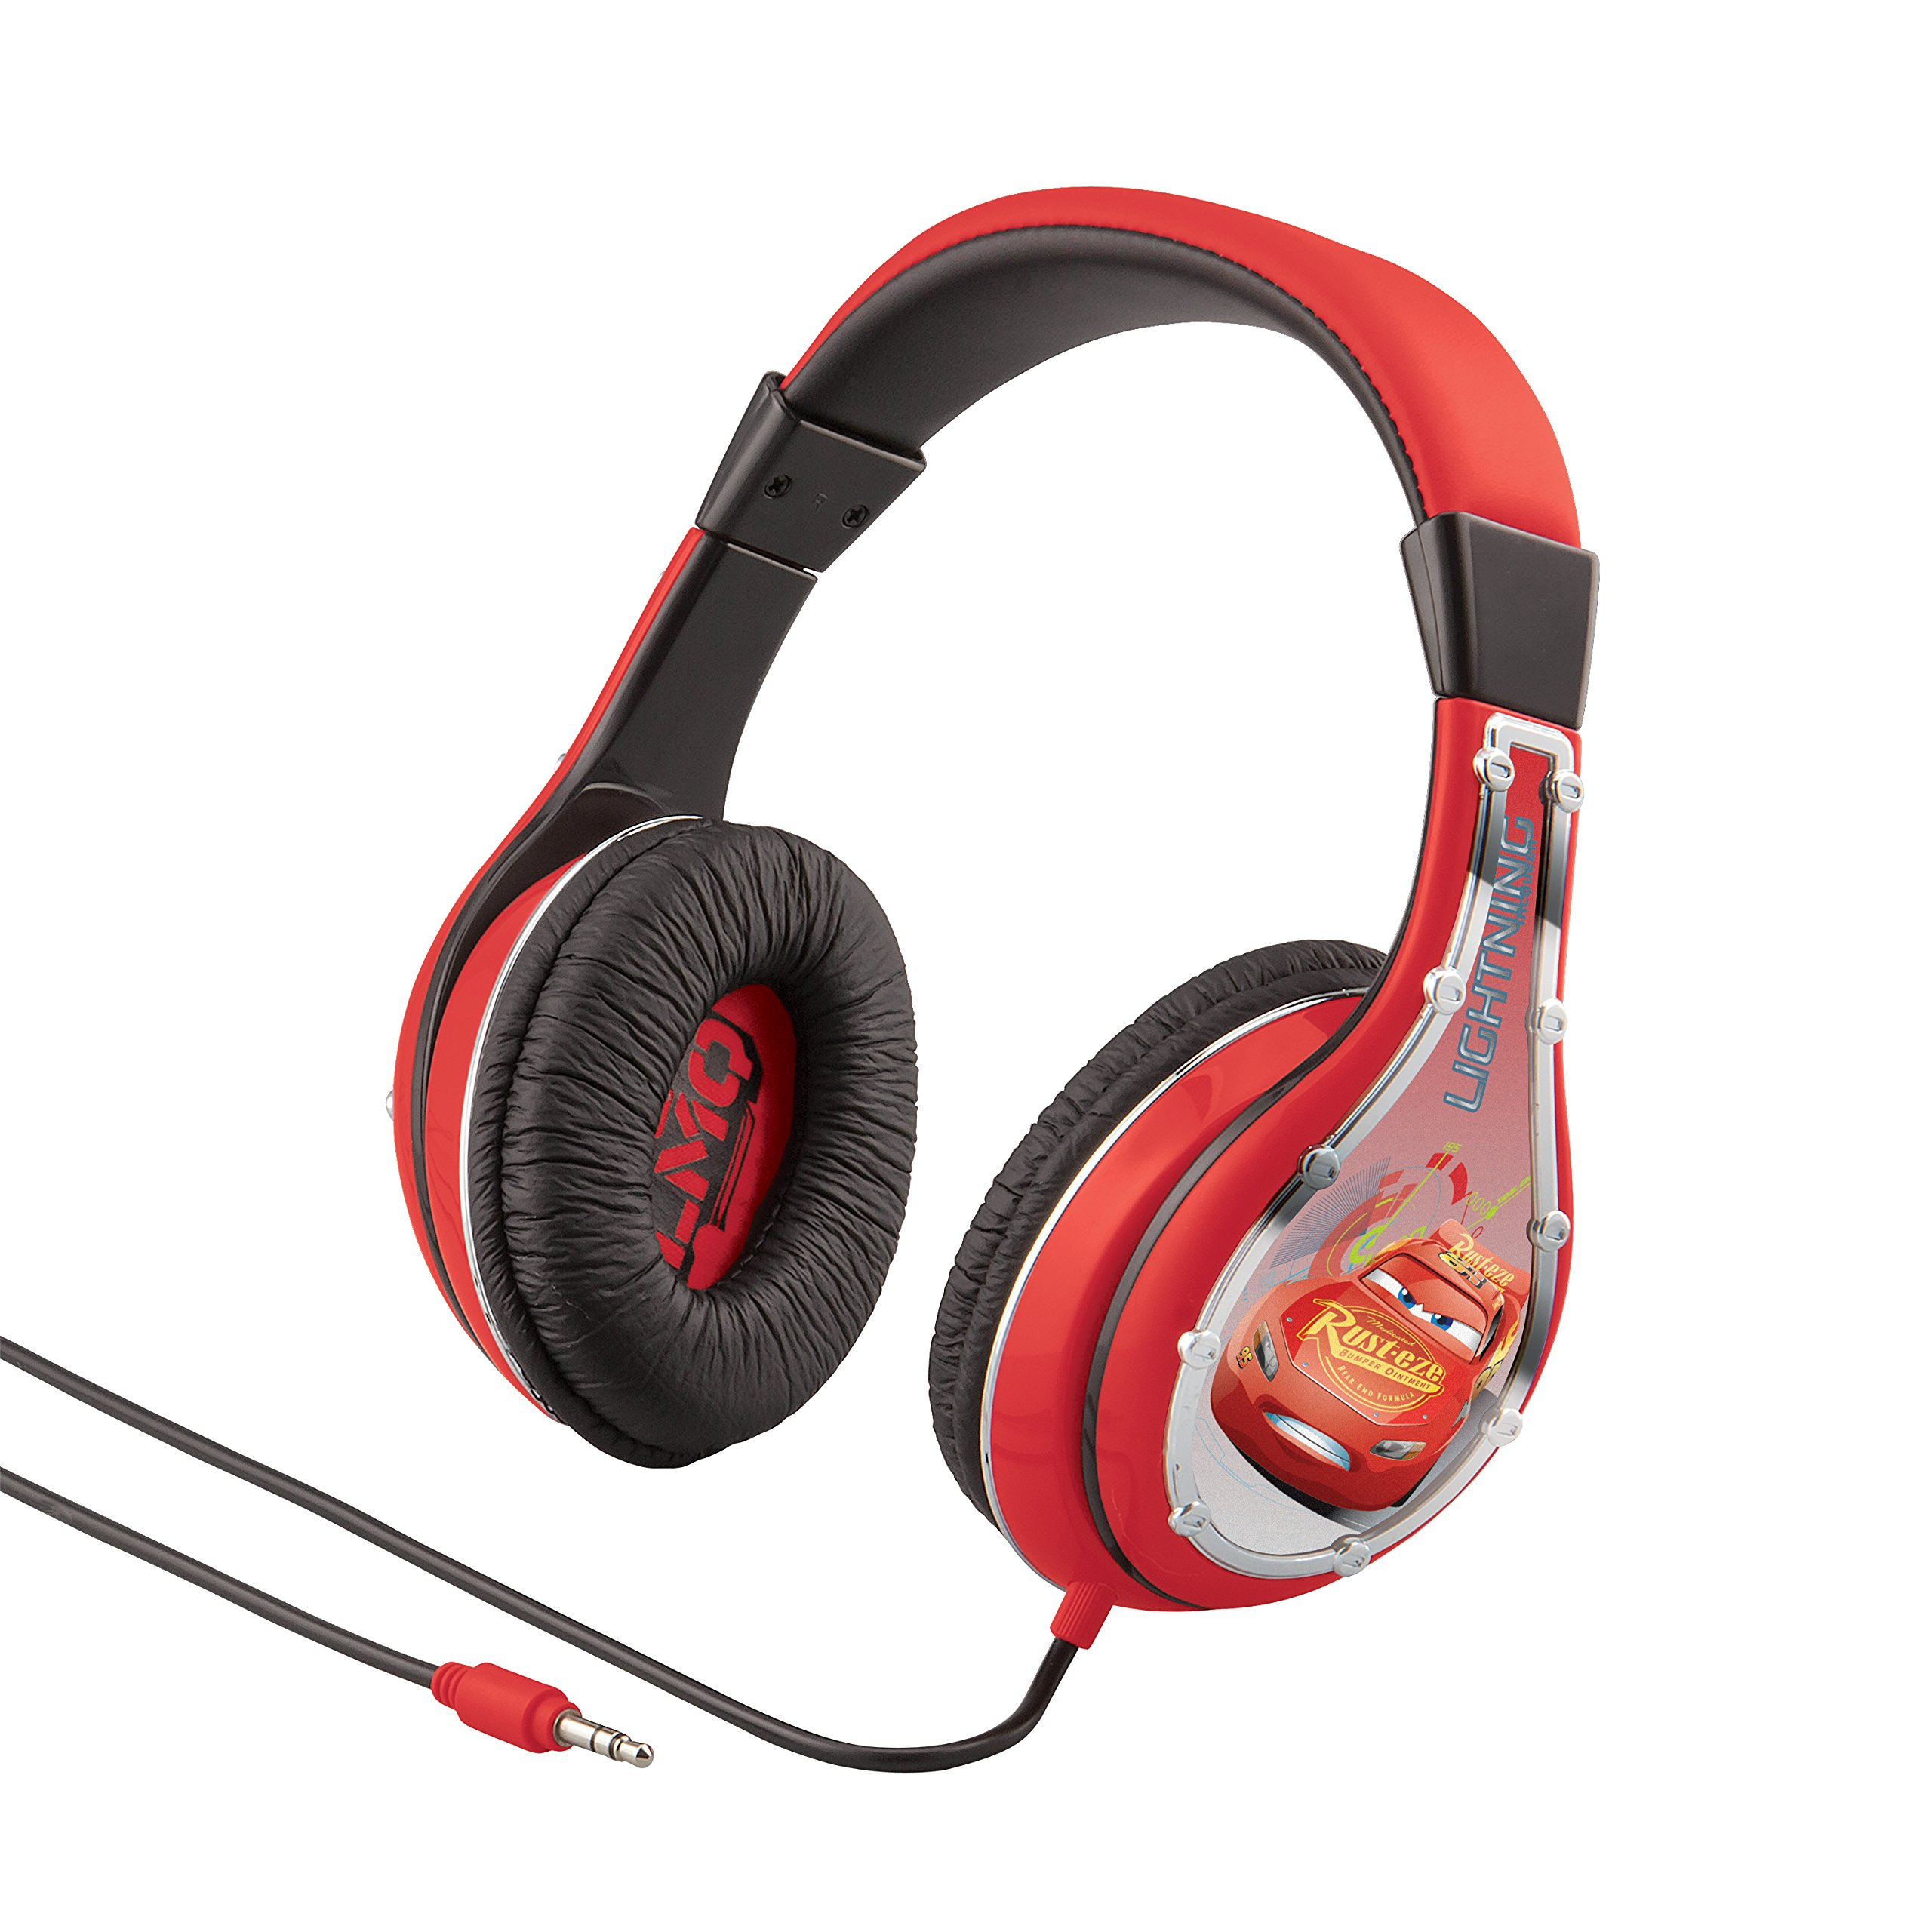 Cars Headphones for Kids with Built in Volume Limiting Feature for Kid Friendly Safe Listening